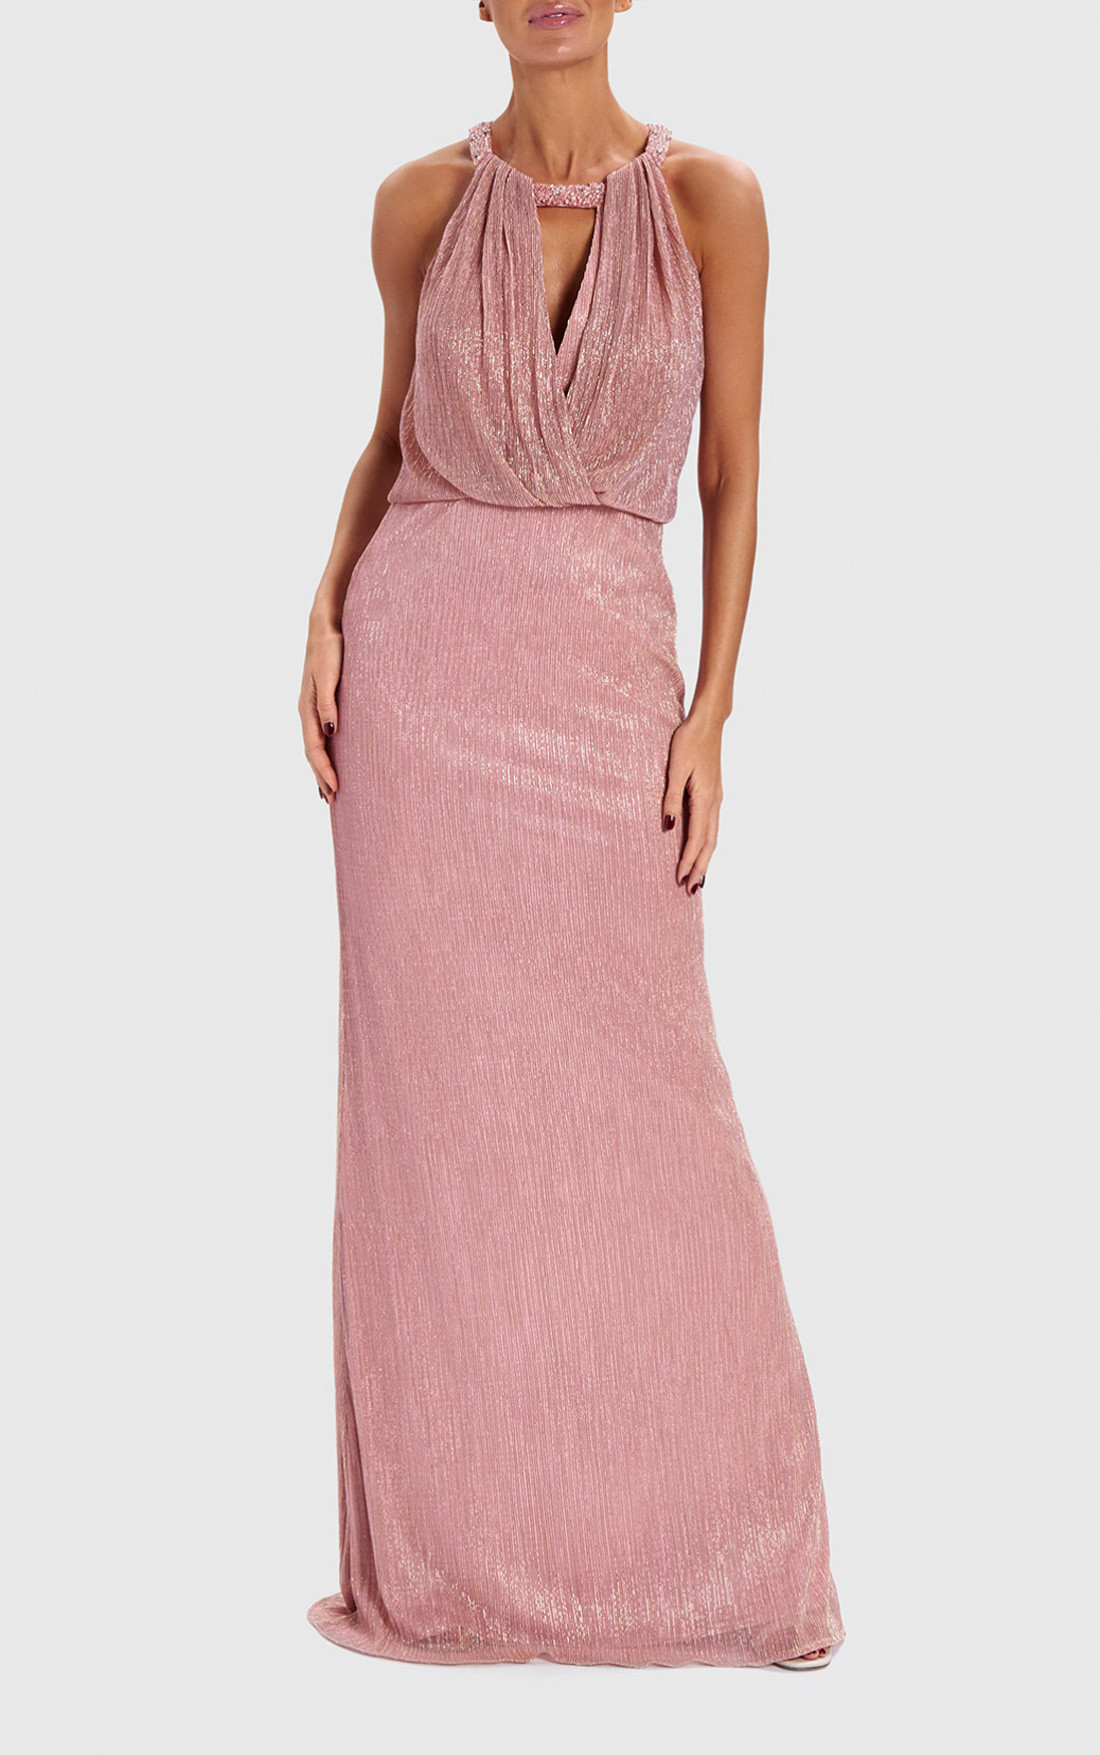 aad1535ffce0 Forever Unique - Shimmer Nude Metallic Draped Maxi Dress (AB0922) ...